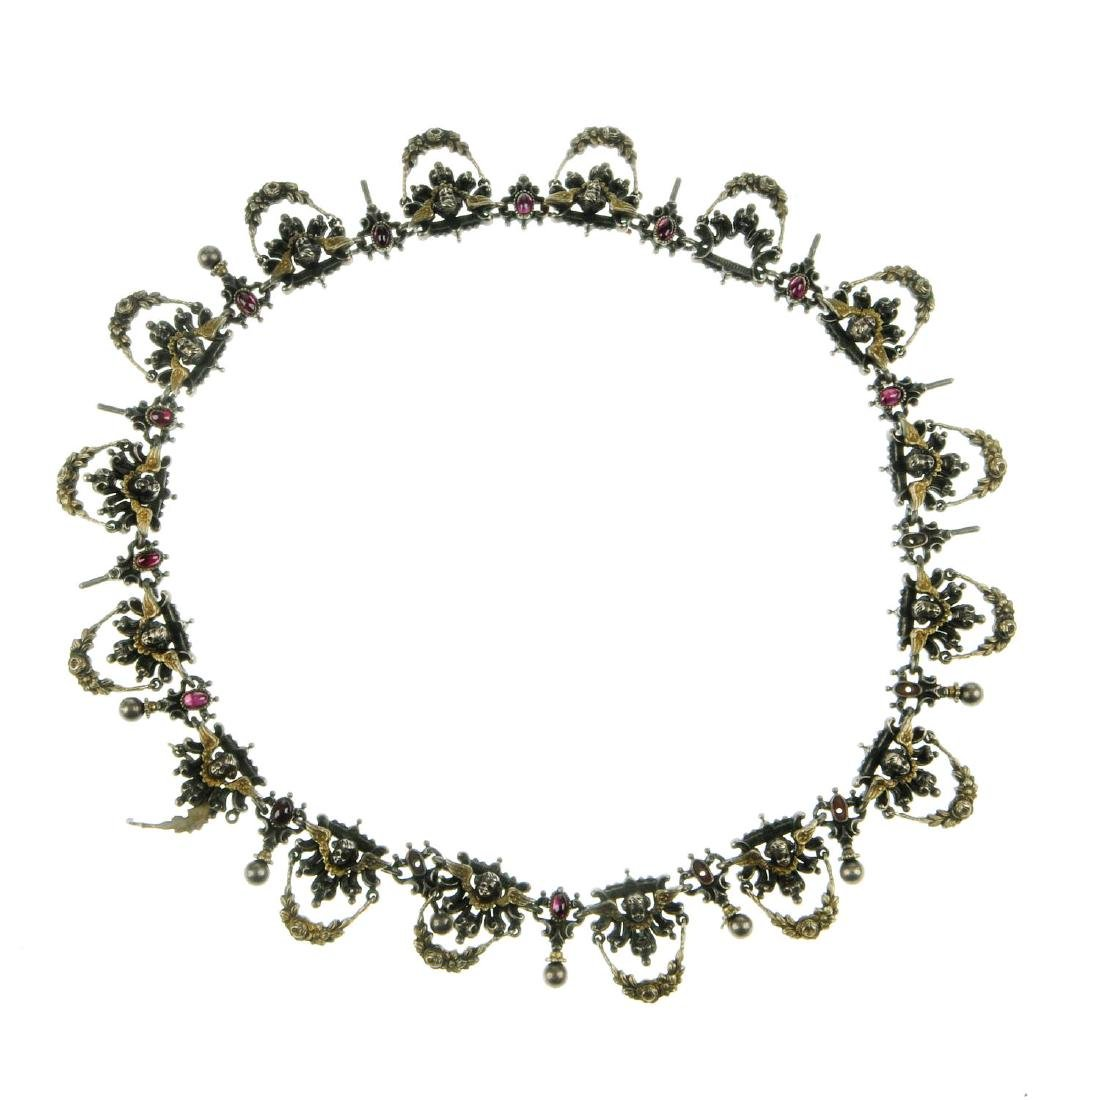 An Austro-Hungarian necklace. Designed as a series of